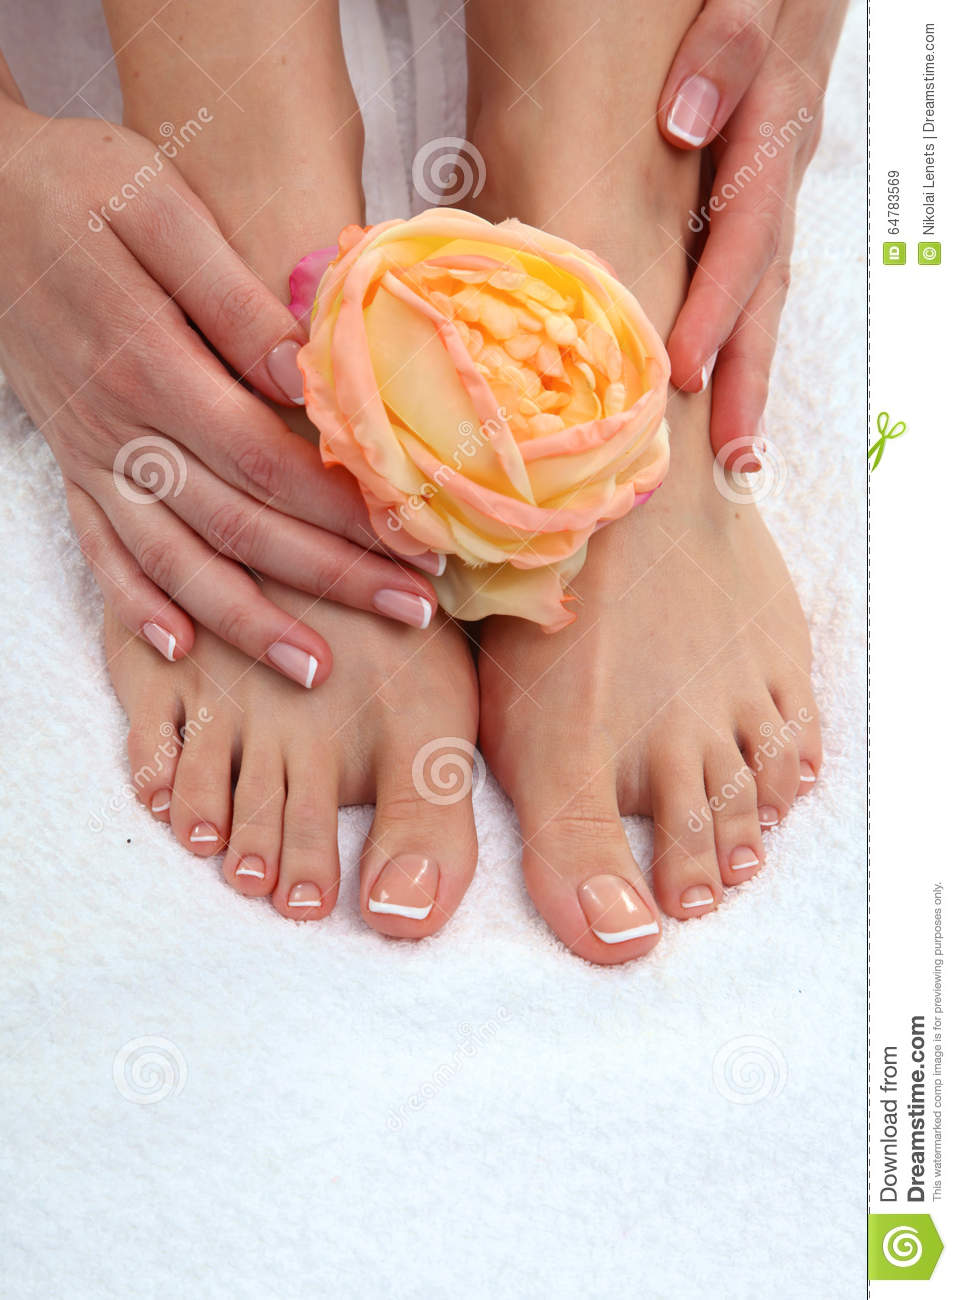 business plan for a nail and foot spa demo